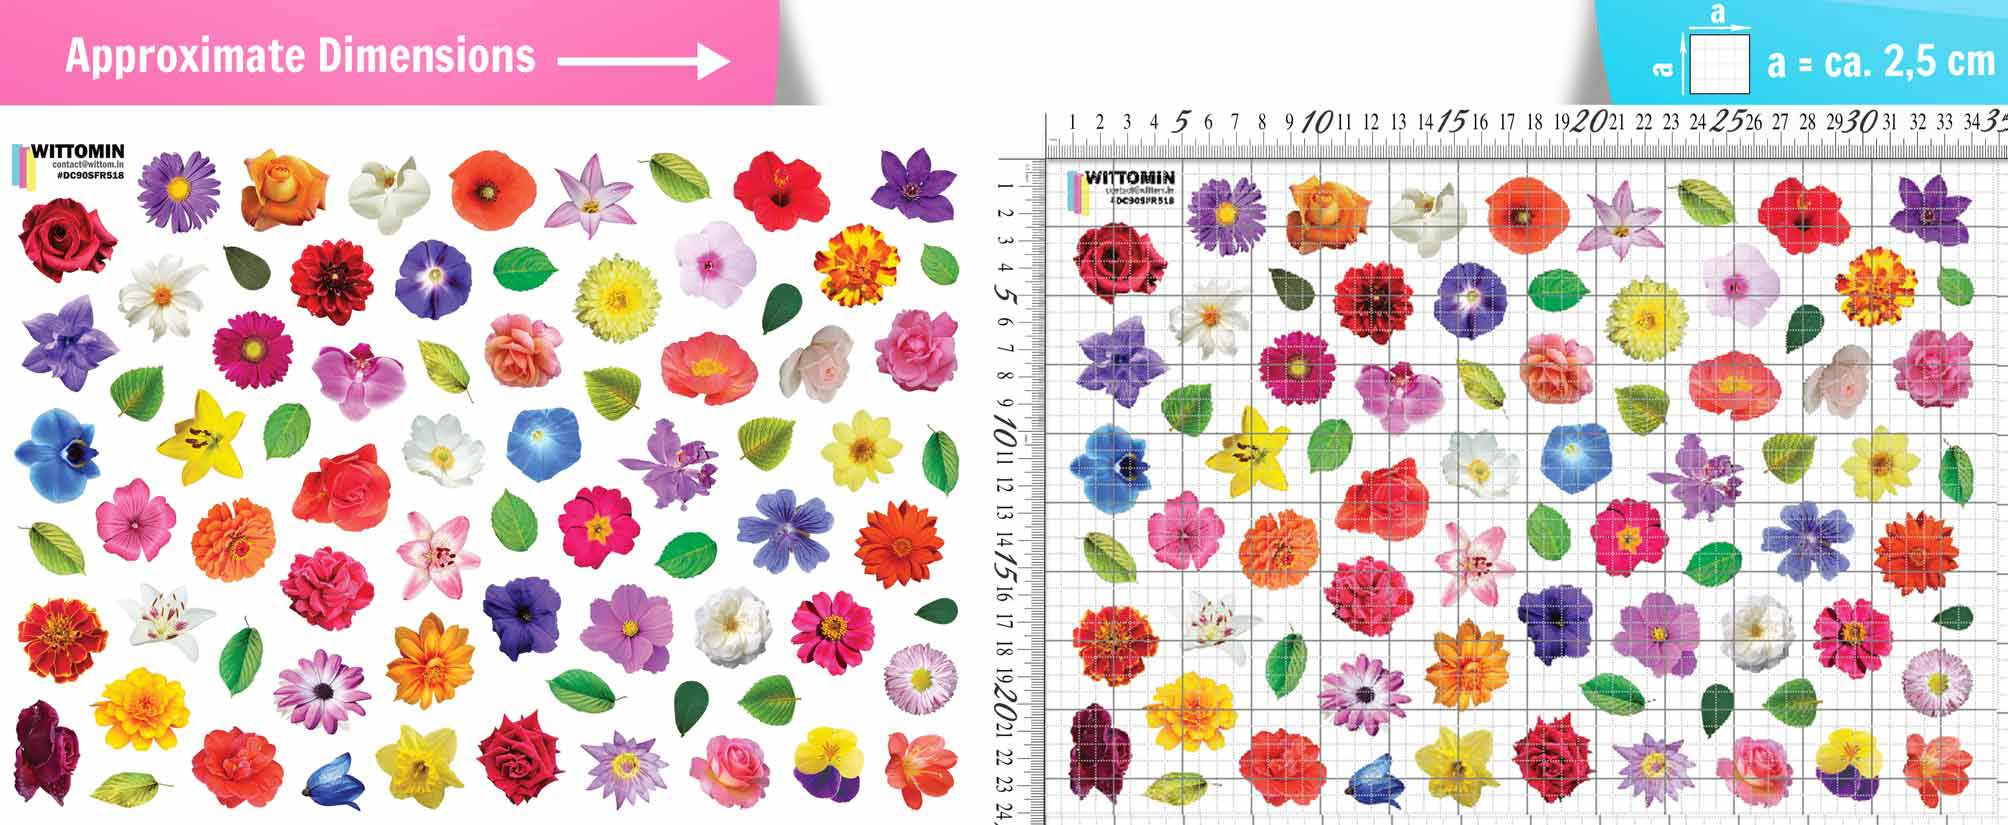 Small Flowers sticker set from Wittomin